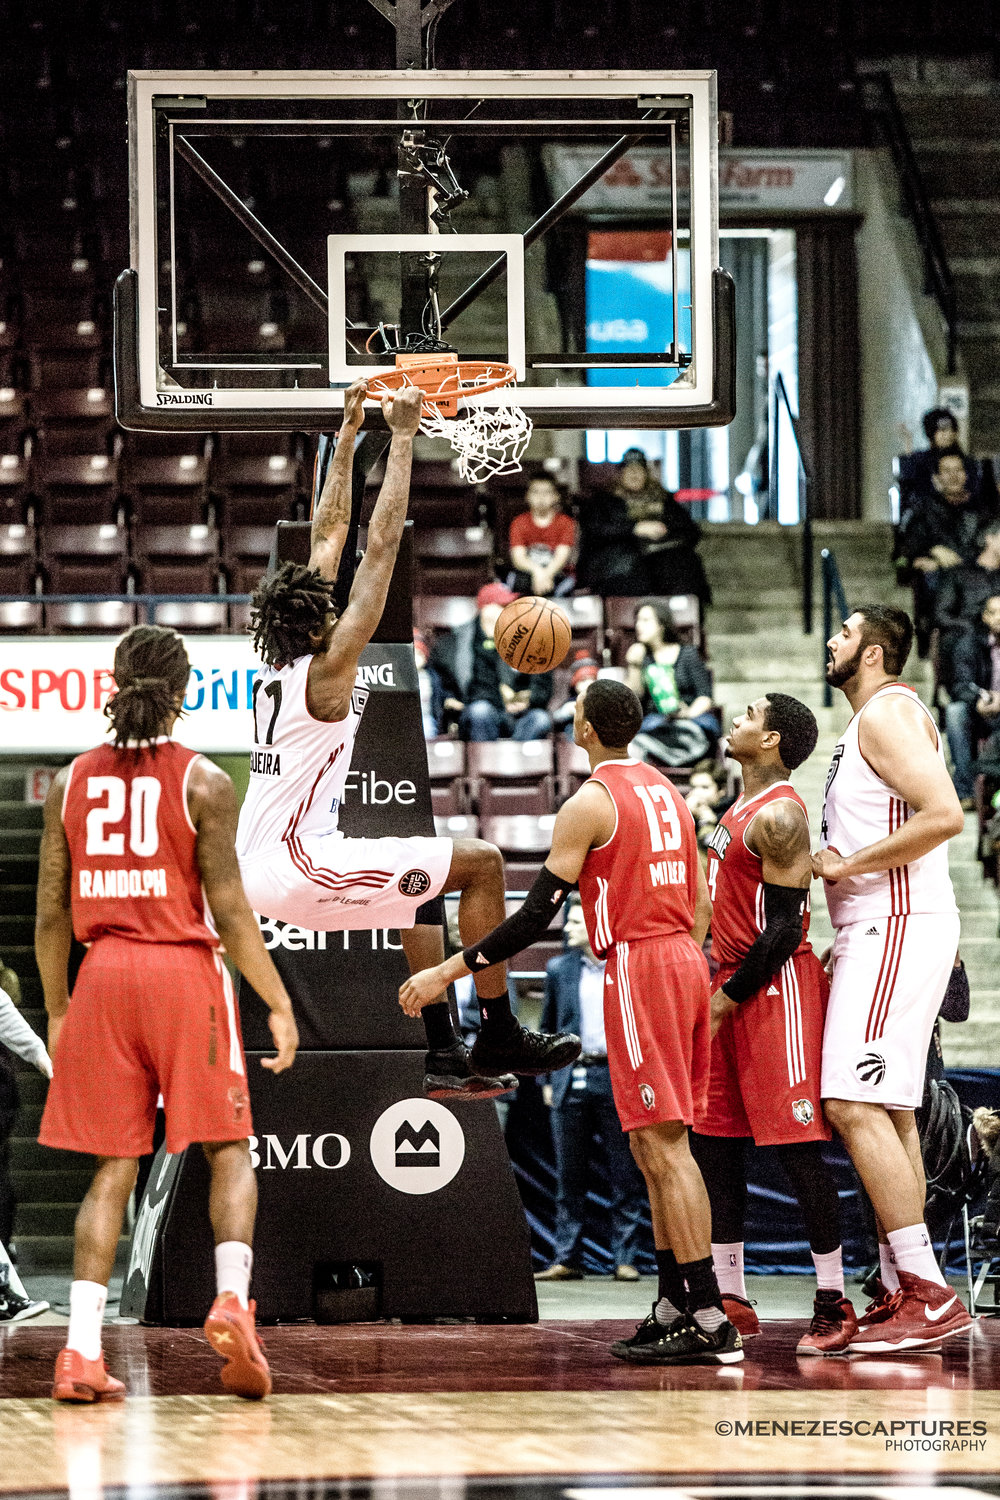 Toronto Raptor centre Lucas Negouira goes for the dunk (2017)